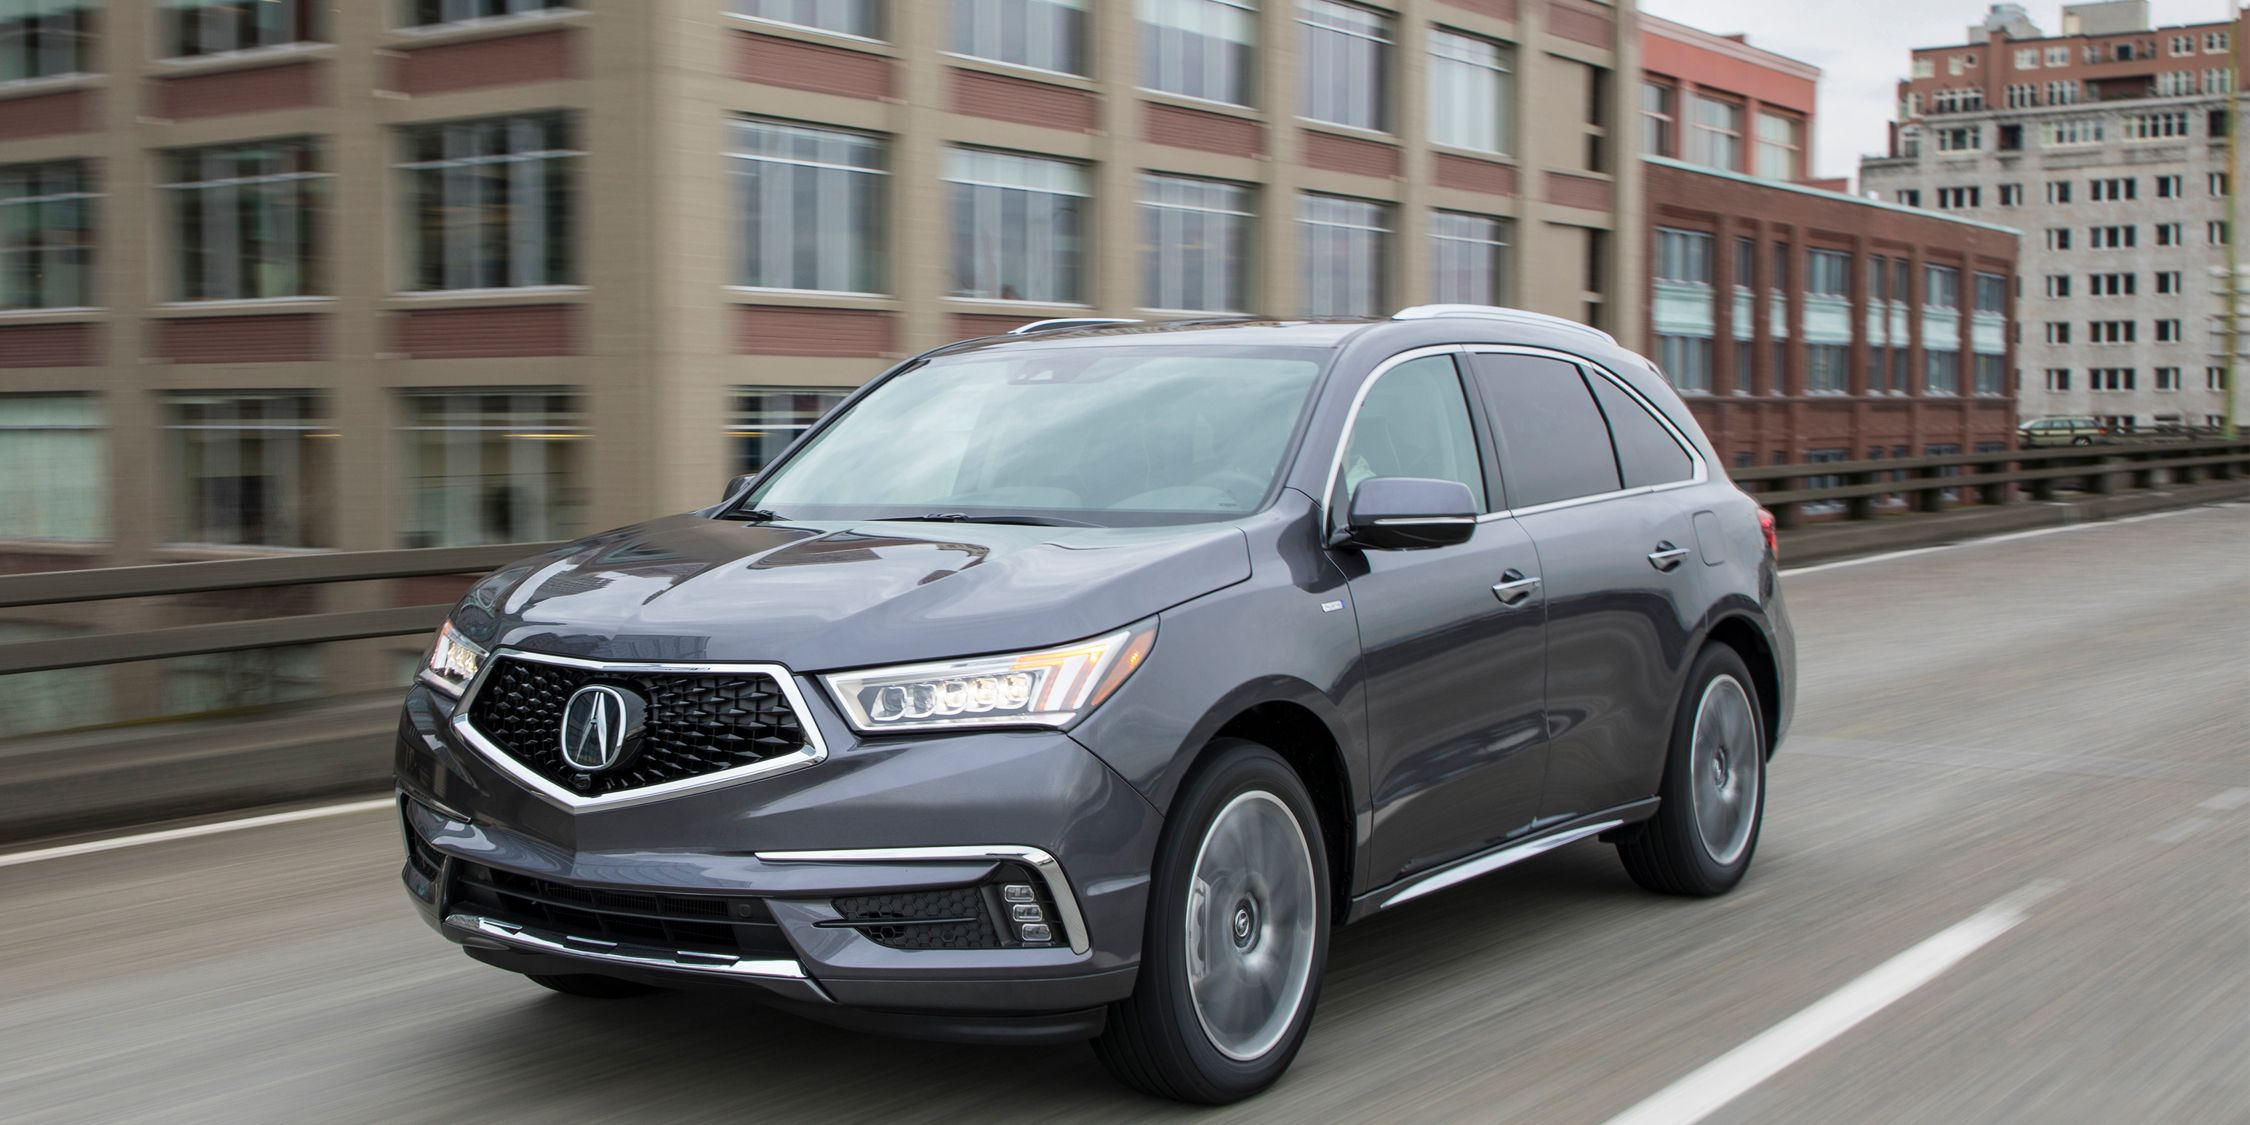 2017 Acura Mdx Sport Hybrid Sh Awd First Drive Review Car And Driver